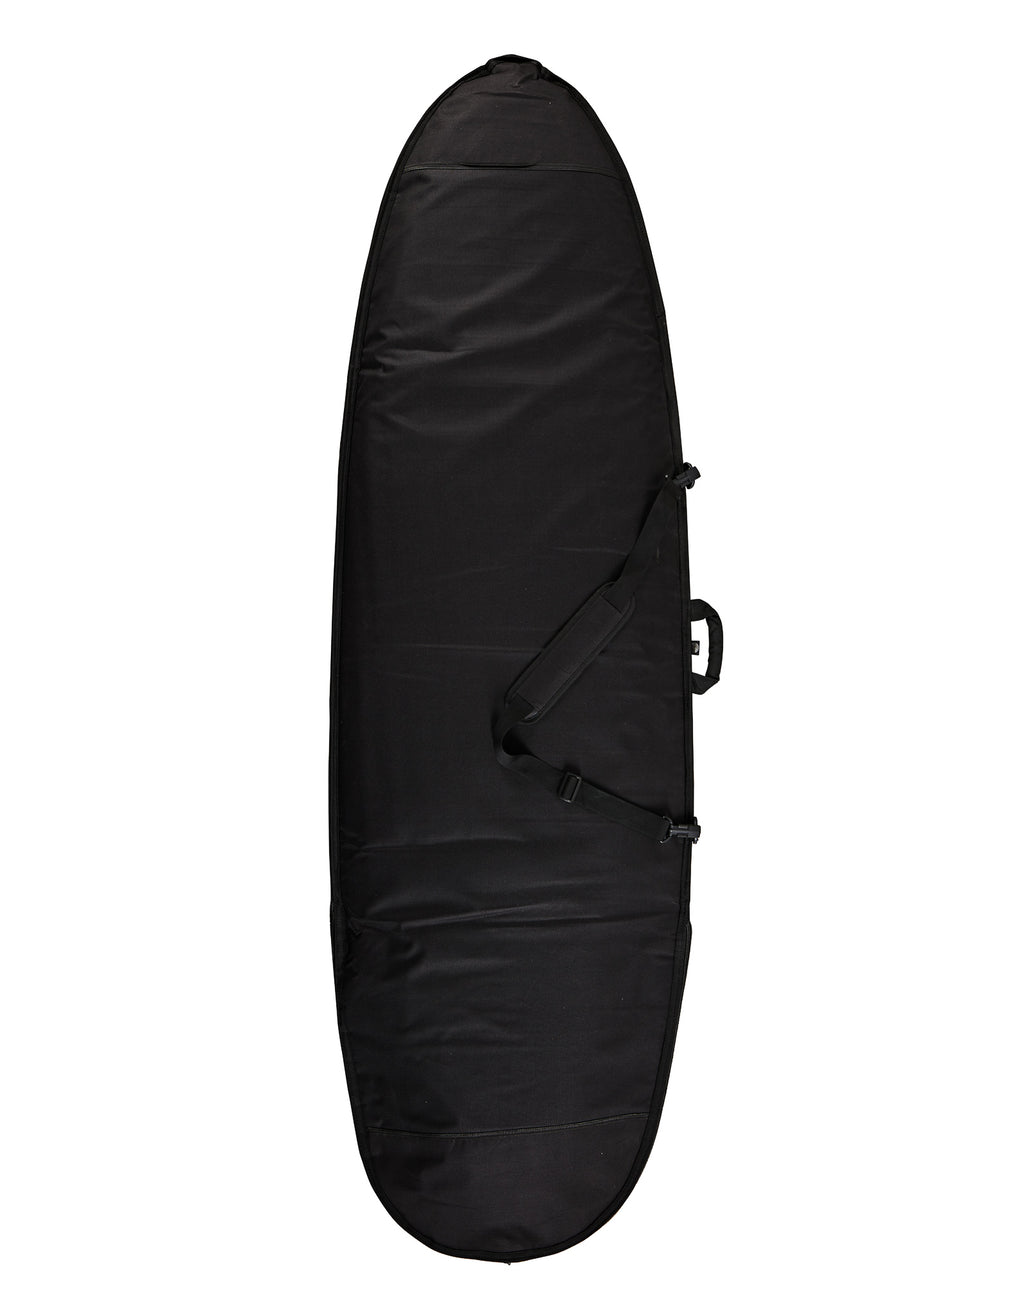 BOARD BAG - Surfboard